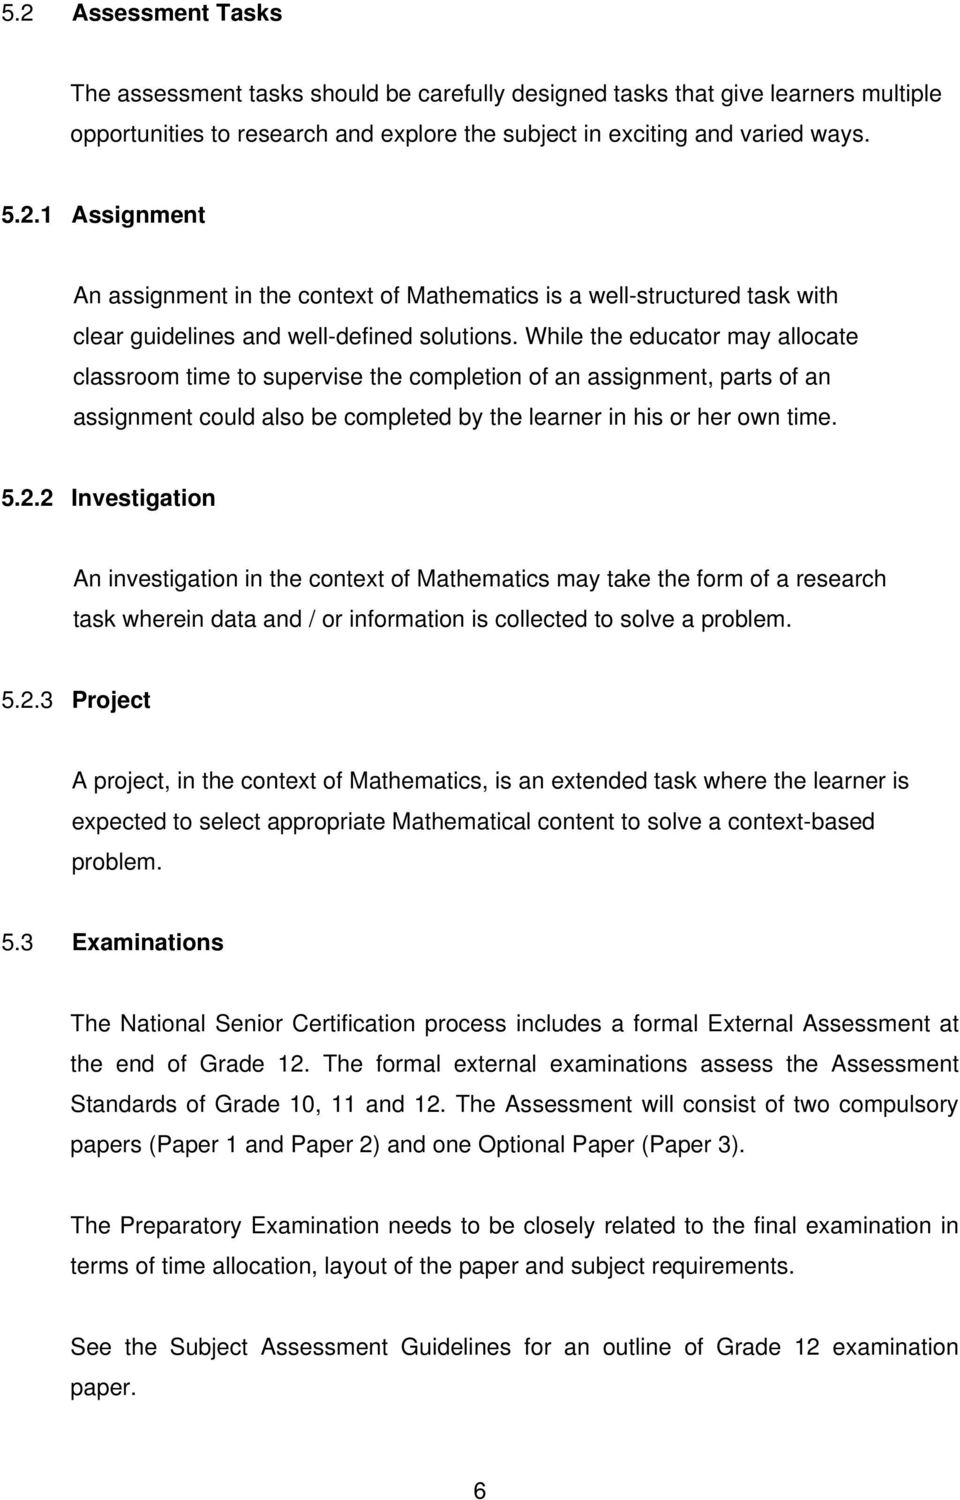 2 Investigation An investigation in the context of Mathematics may take the form of a research task wherein data and / or information is collected to solve a problem. 5.2.3 Project A project, in the context of Mathematics, is an extended task where the learner is expected to select appropriate Mathematical content to solve a context-based problem.